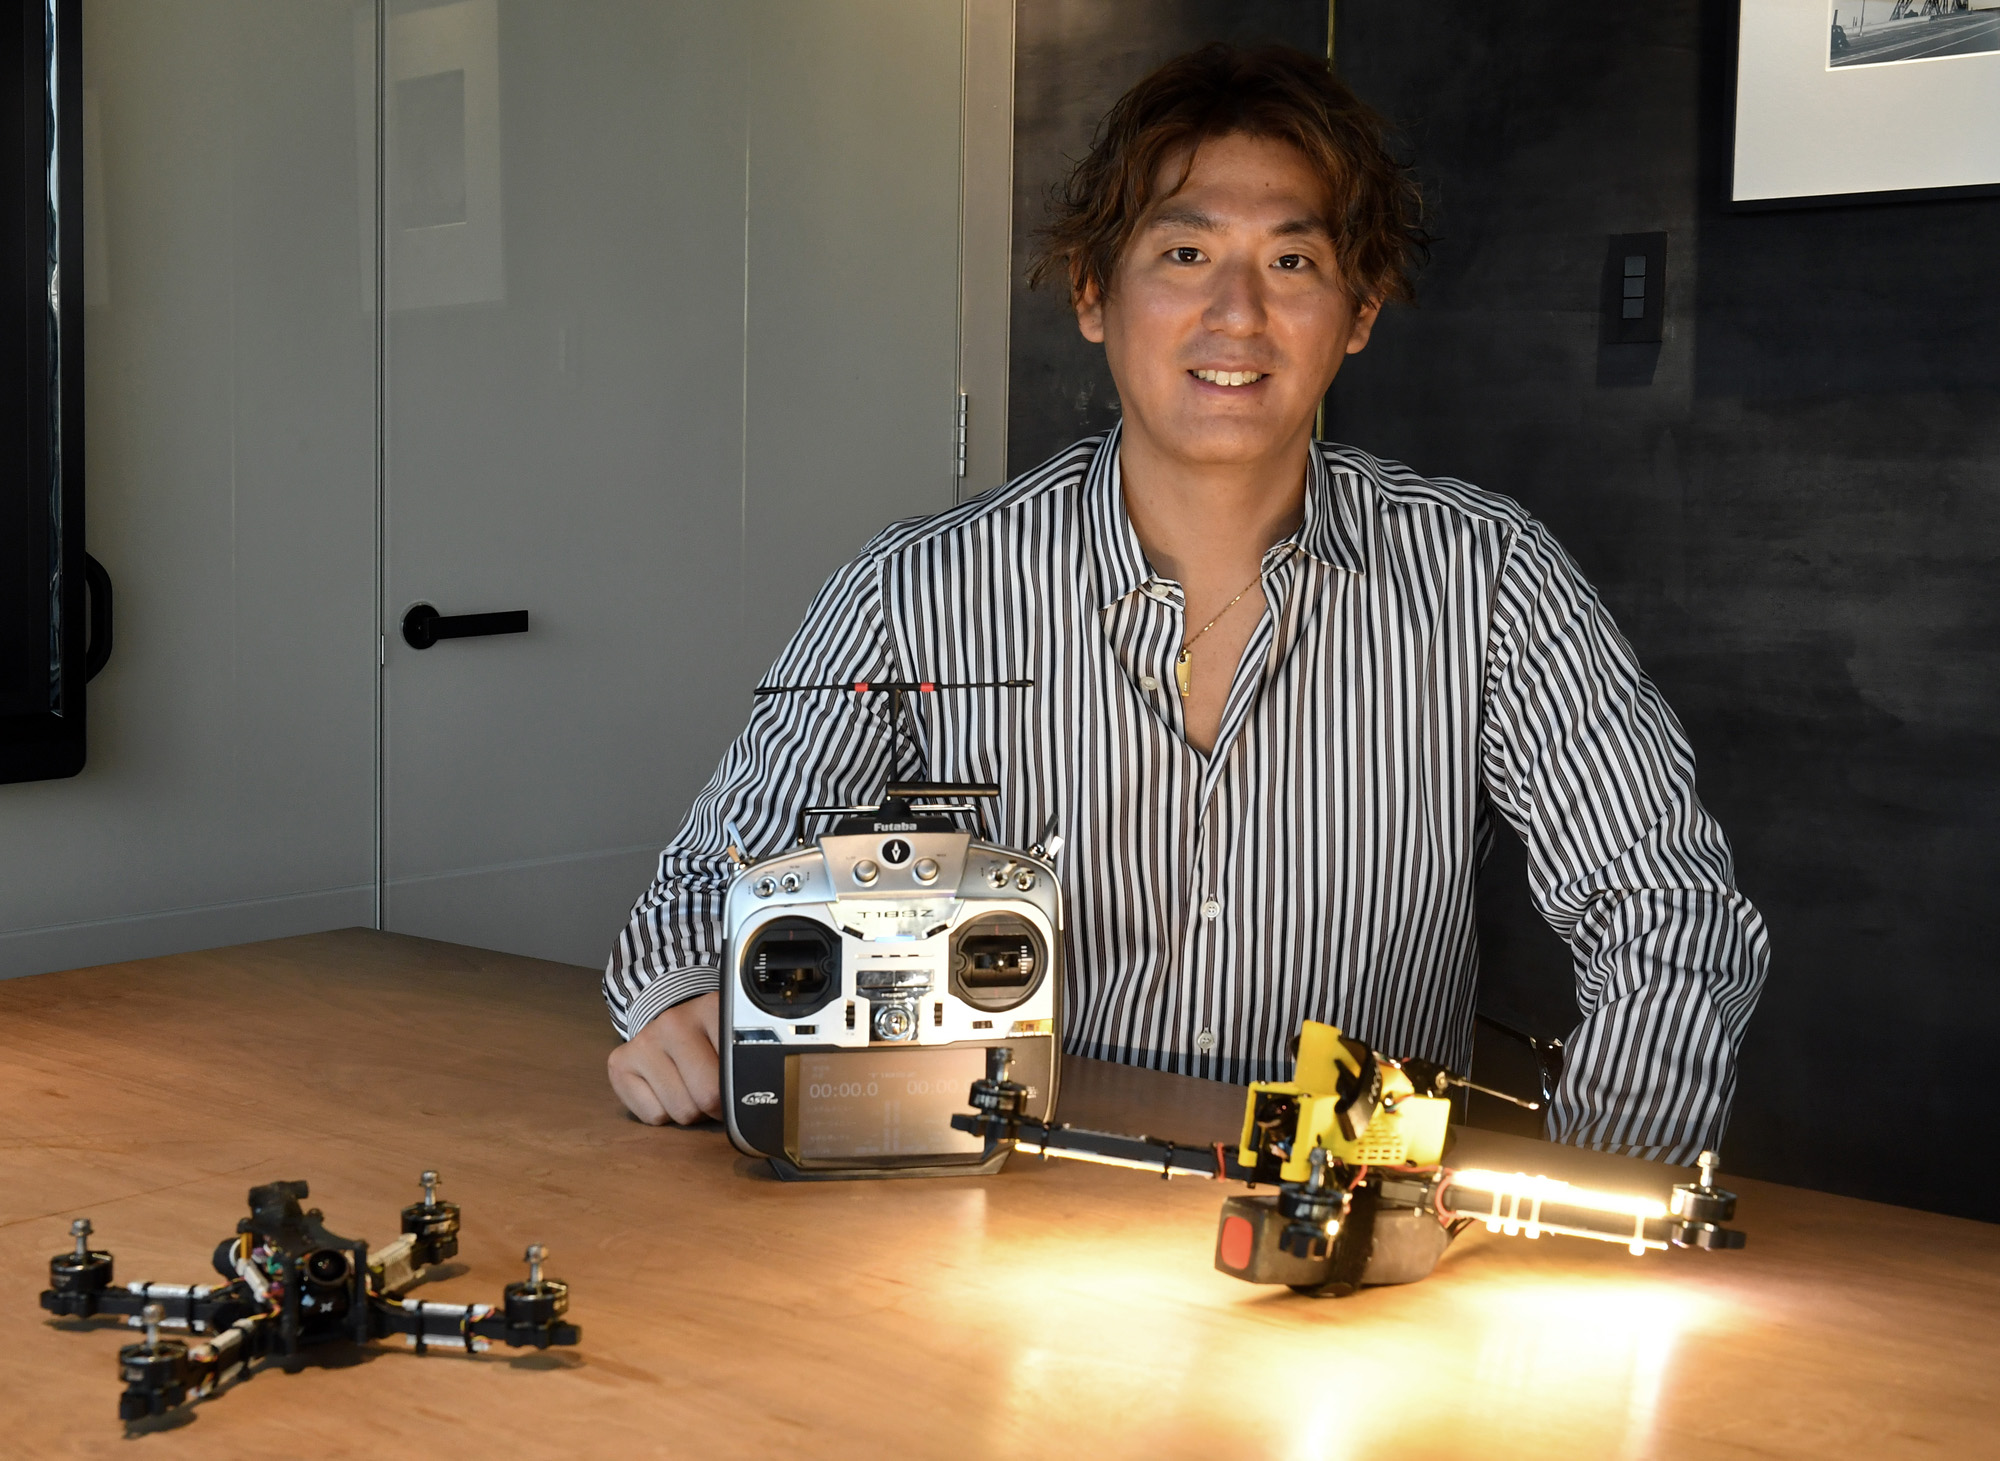 Drone racer Junichi Goto poses for a photograph at The Japan Times